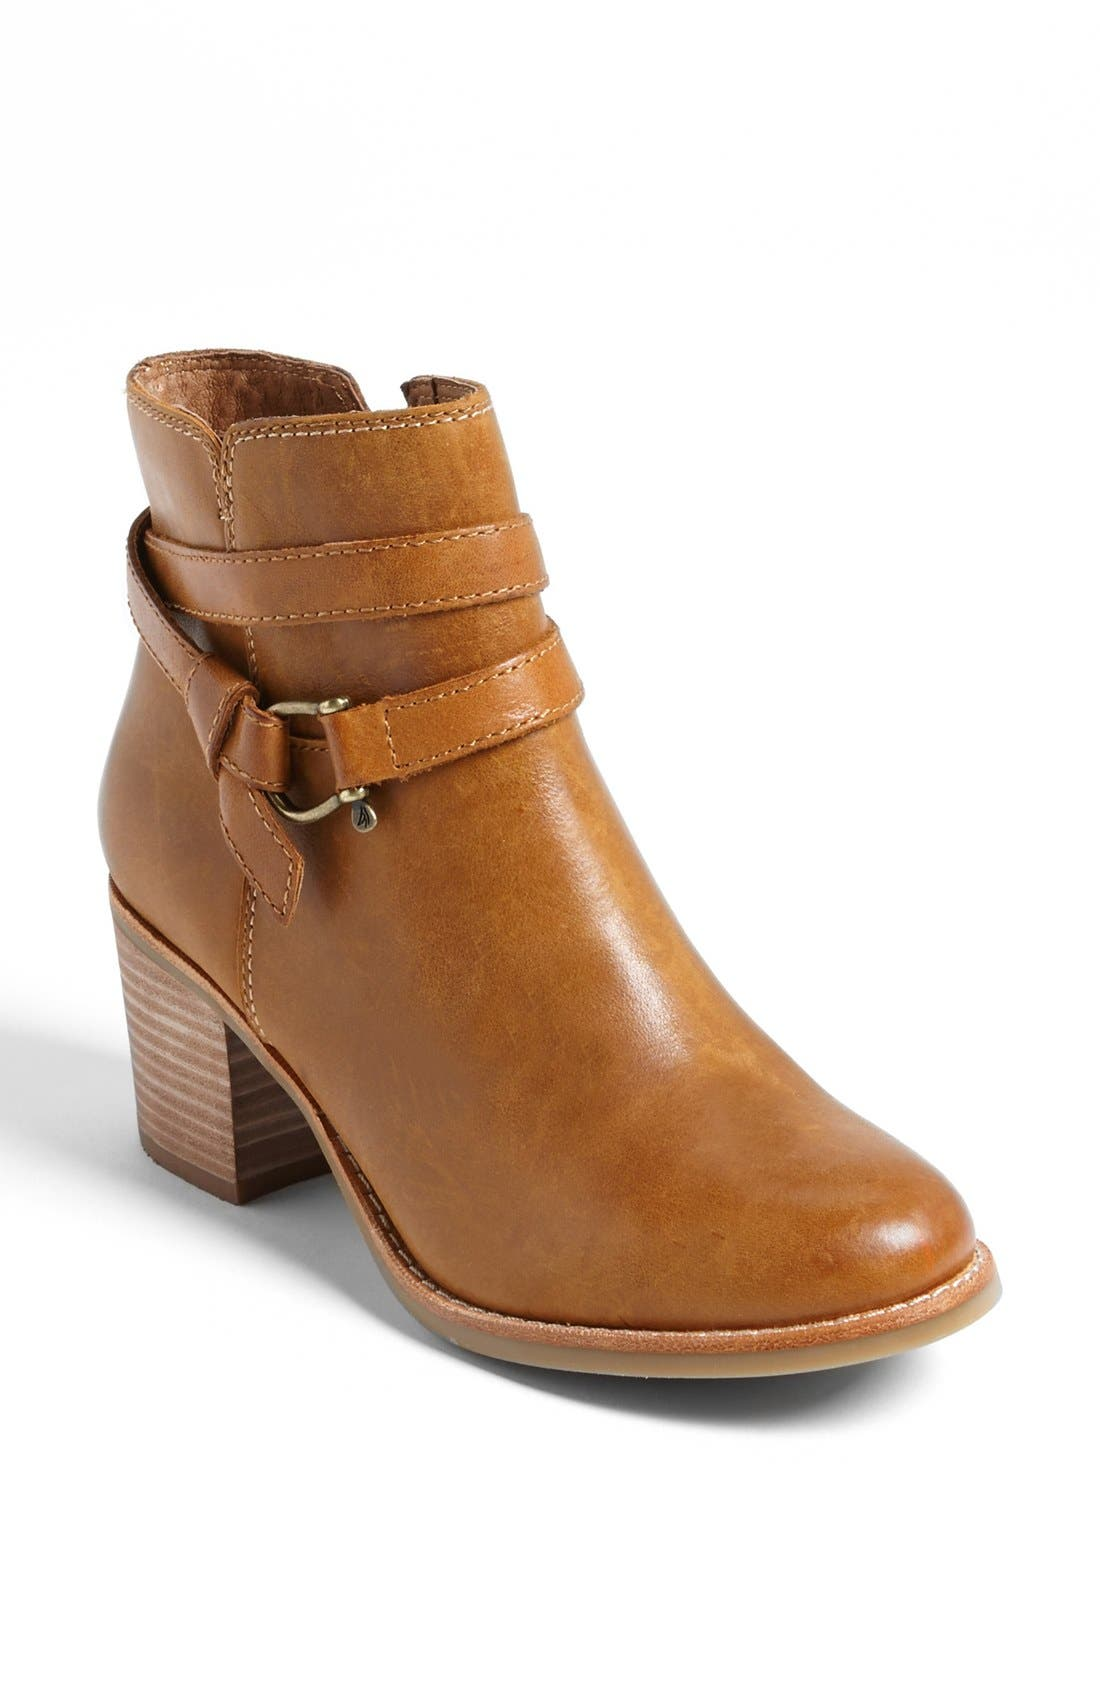 Top-Sider<sup>®</sup> 'Chelton' Bootie,                         Main,                         color, Tan